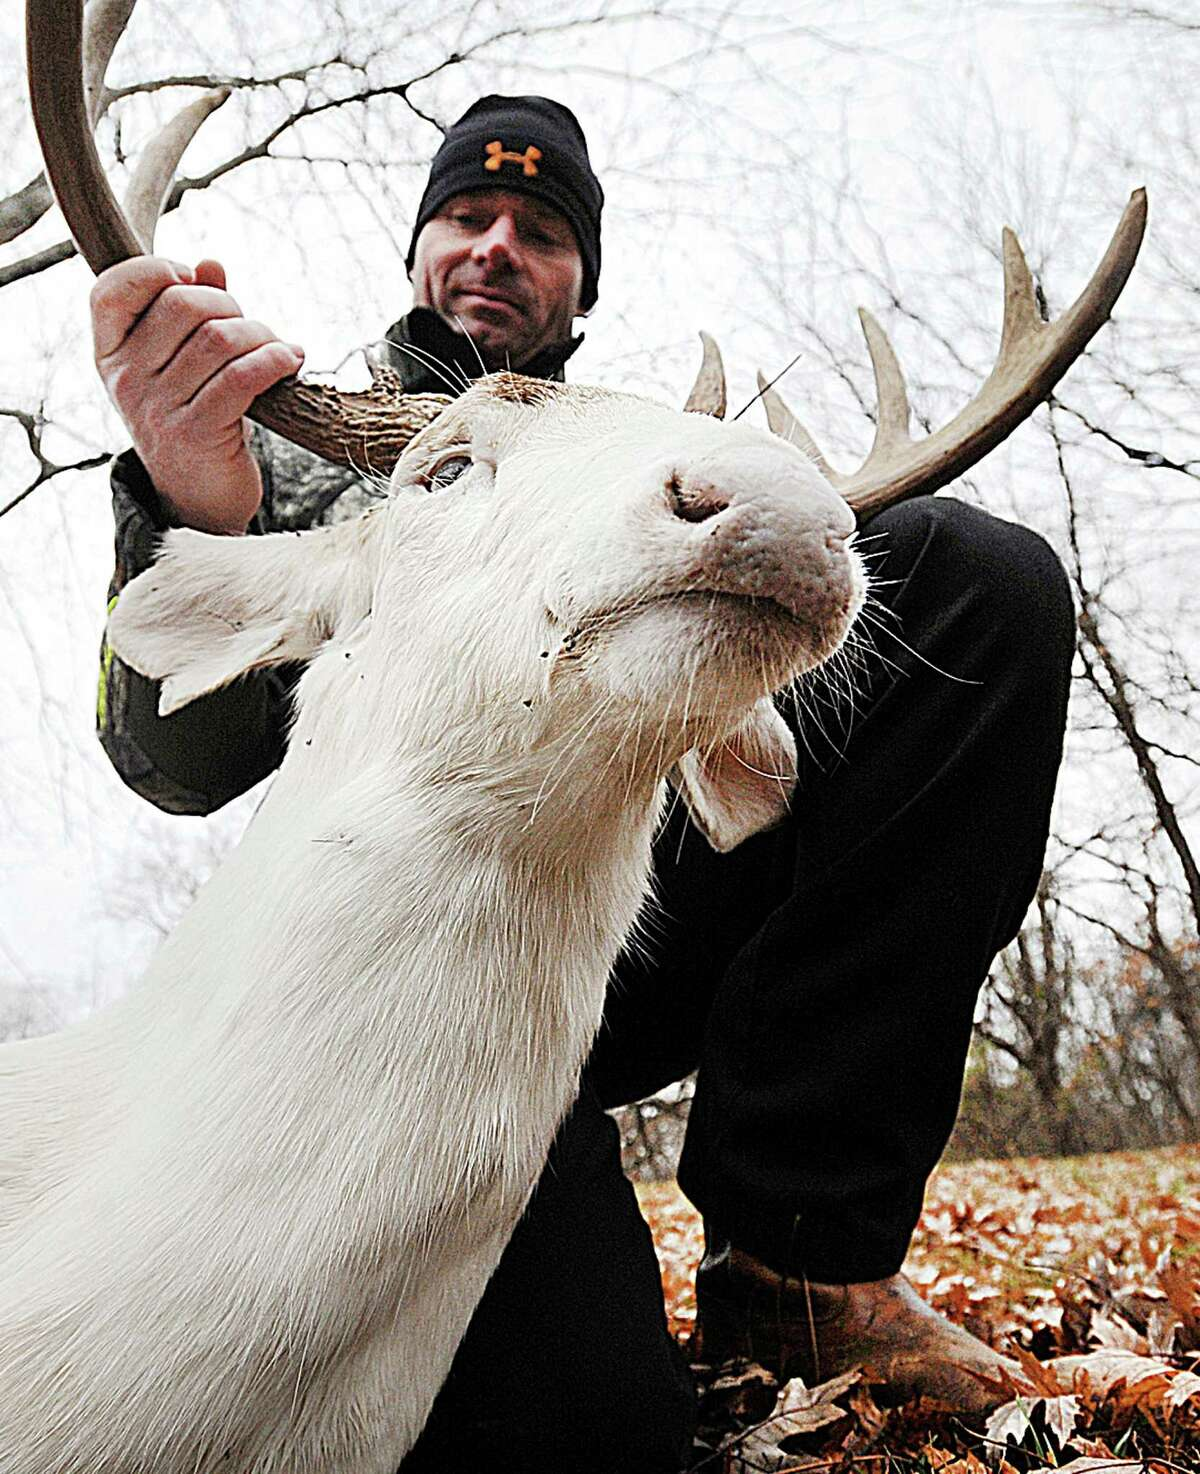 In this Dec. 2, 2014 photo Jerry Kinnaman holds up a rare 10-point albino buck he shot with a bow and arrow in Missouri's Cape Girardeau County. Kinnaman said Friday, Dec. 5, that he feels the heat for killing the deer but doesn't regret his actions. (AP Photo/The Southeast Missourian, Laura Simon)